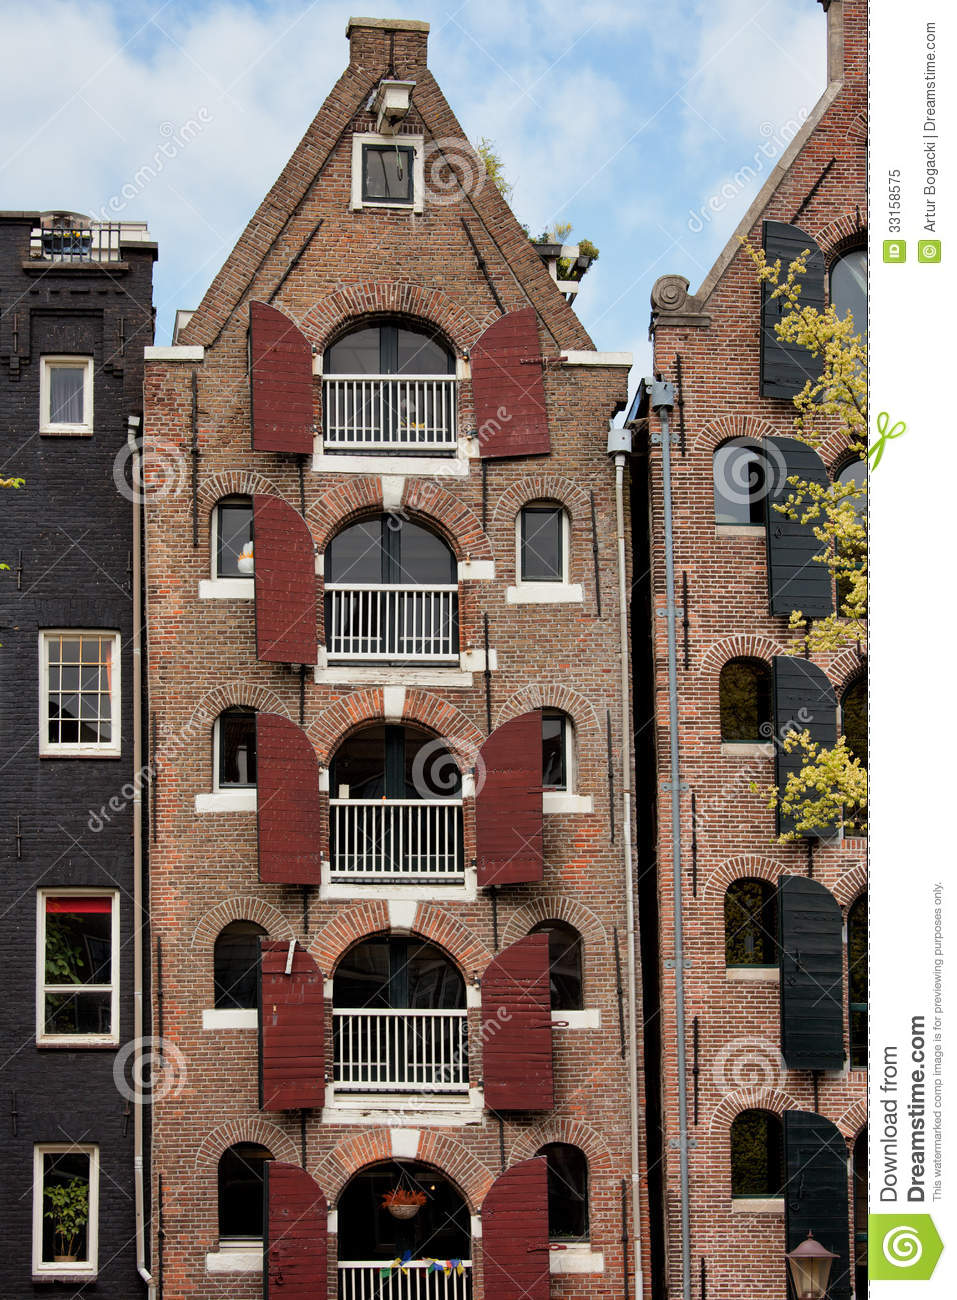 Old Apartment Building In Amsterdam Stock Image   Image Of Dutch, Facade:  33158575